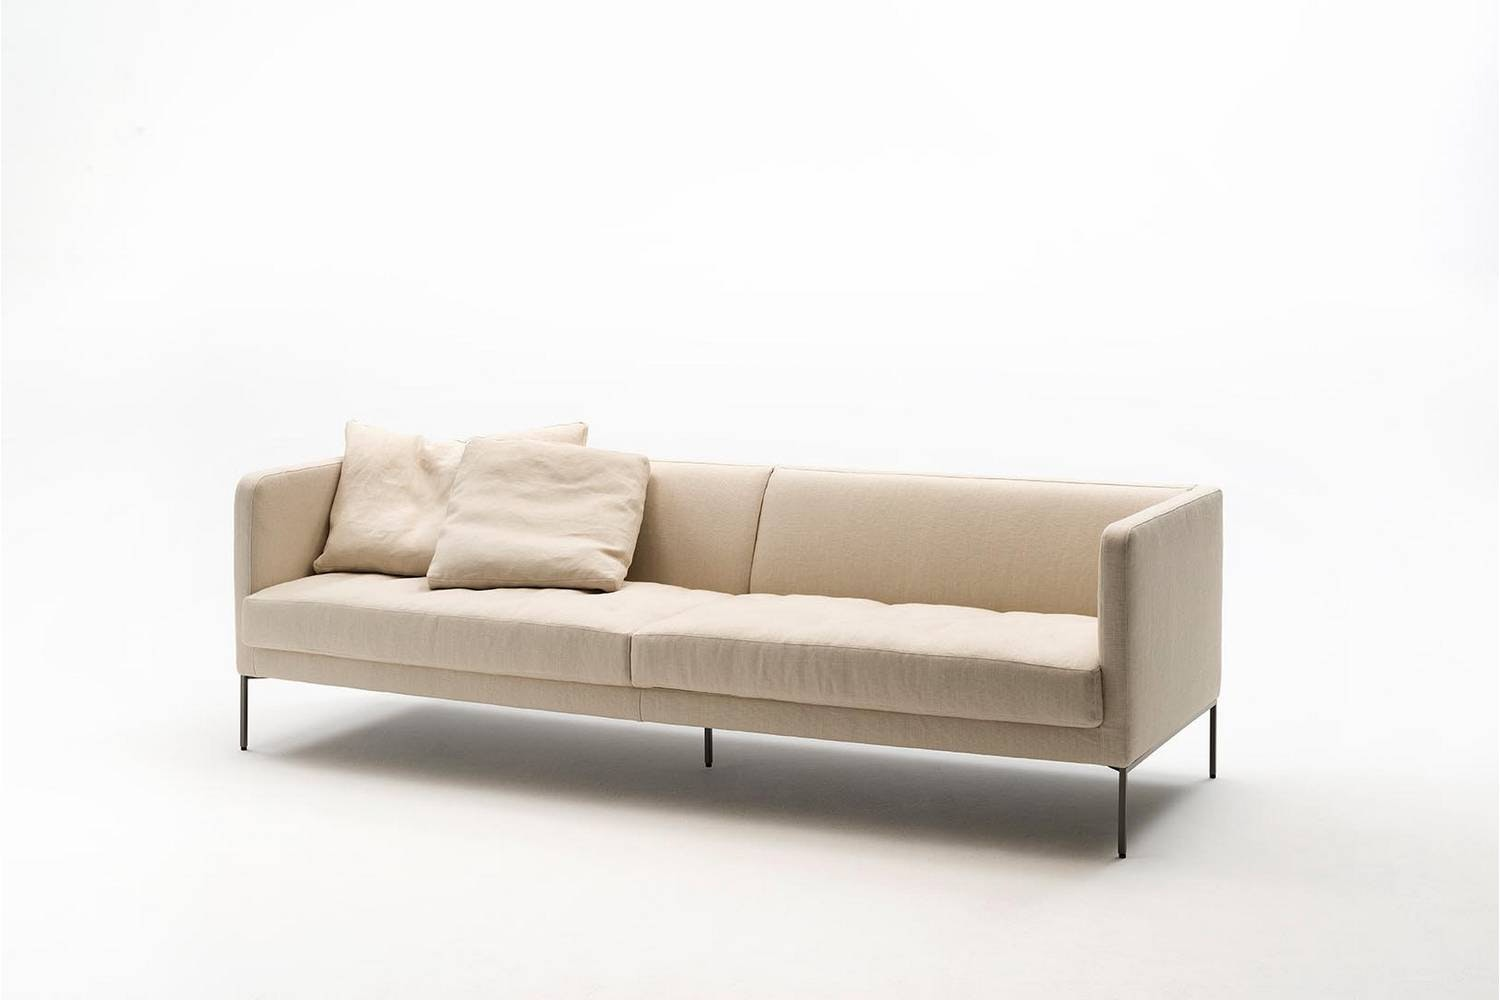 Easy Lipp Sofa by Piero Lissoni for Living Divani